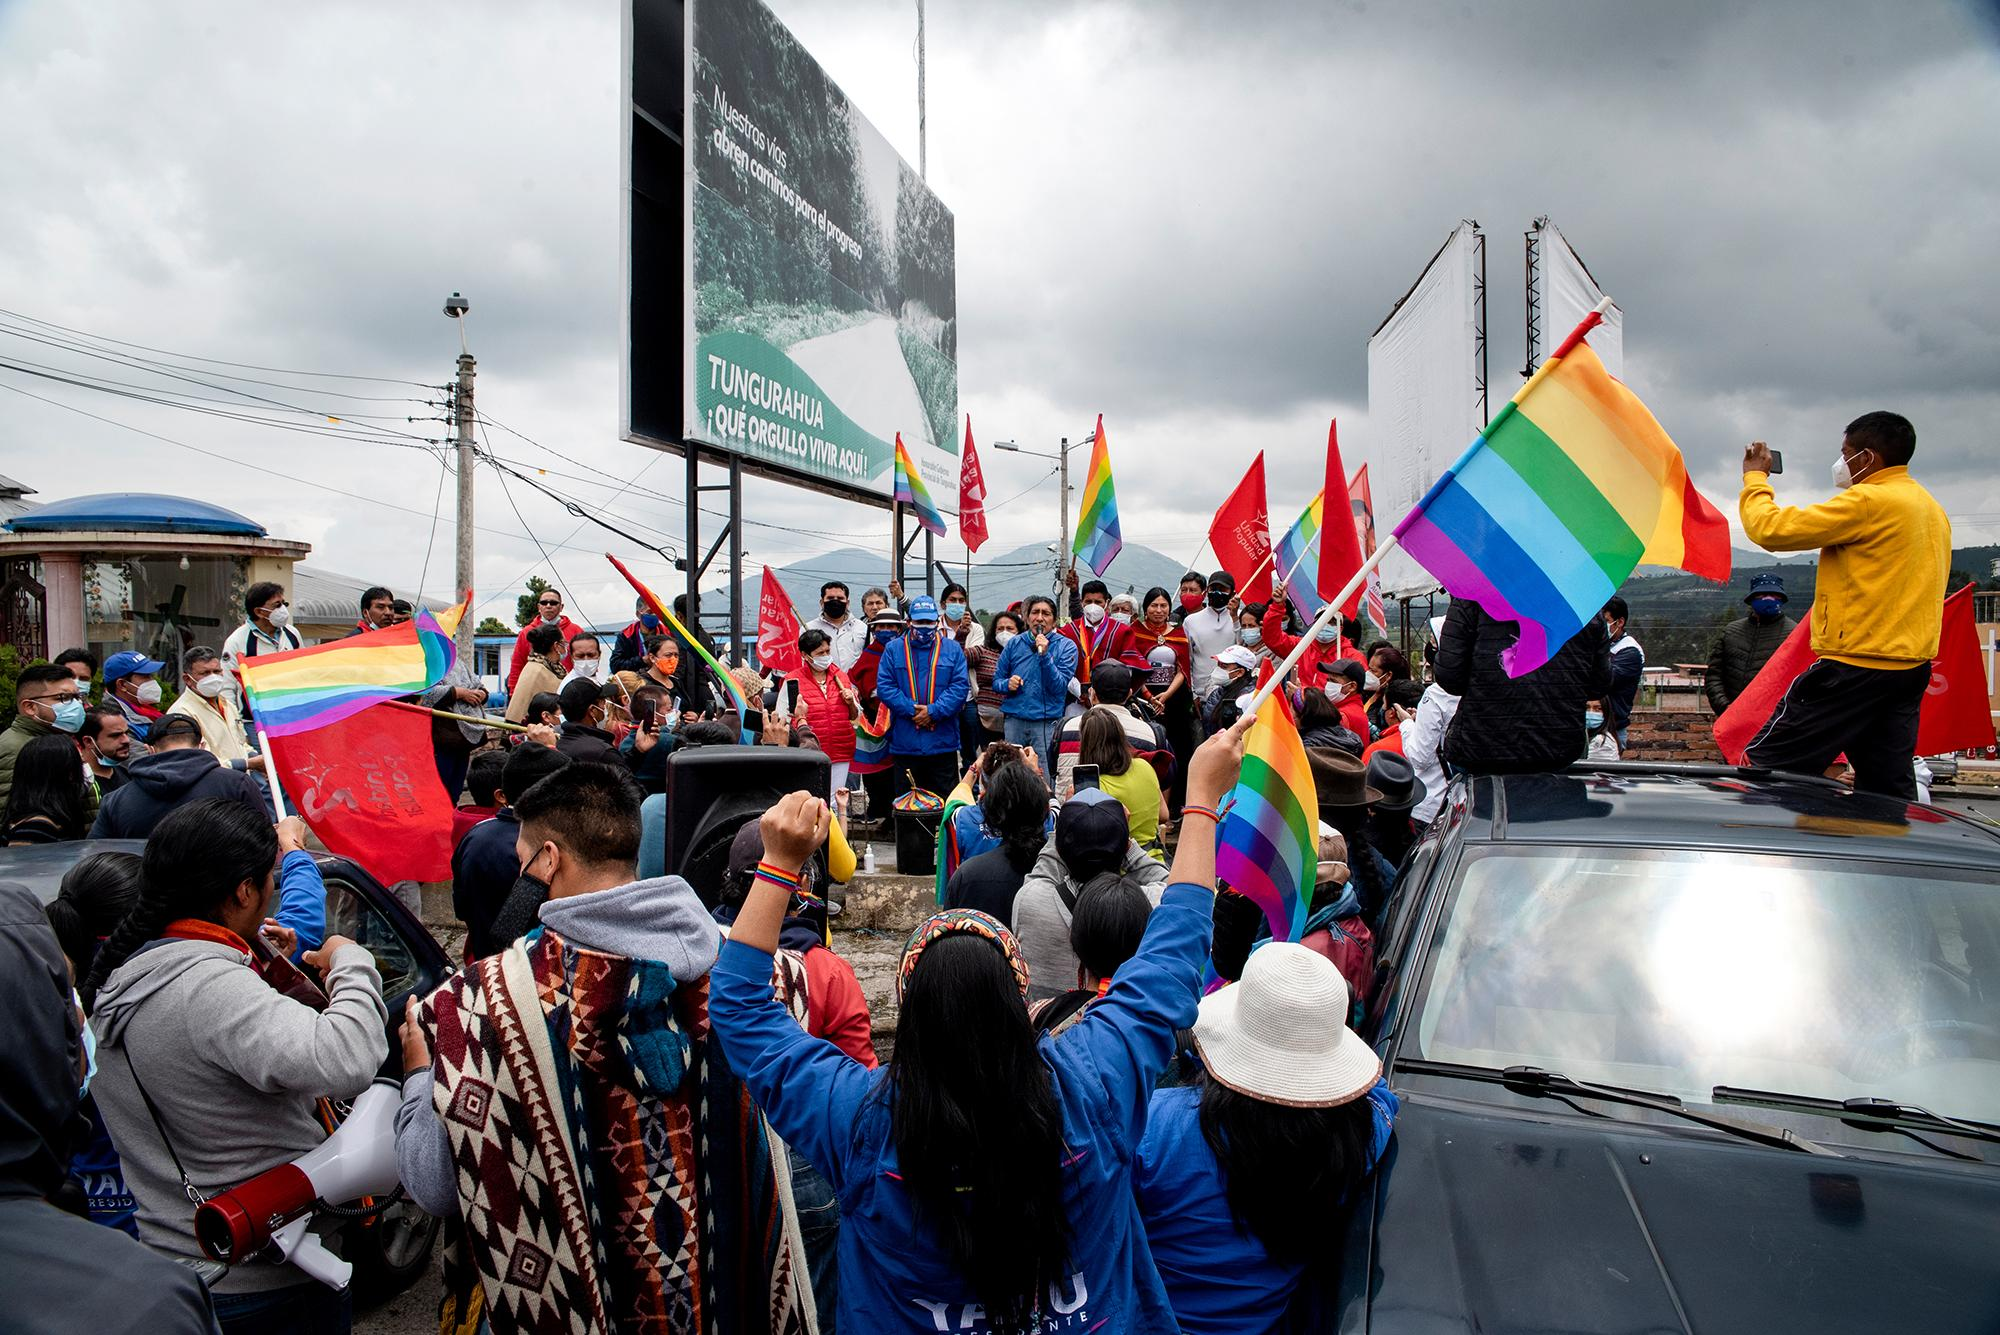 Indigenous leaders, activists, and supporters of the Pachakutik party receive the candidate president Yaku Pérez in the Mocha canton. Several participants join the National March for Democracy on its way to Quito to demand transparency in the electoral process on February 7. Tungurahua, Ecuador. February 22, 2021. Johis Alarcón for The New York Times.